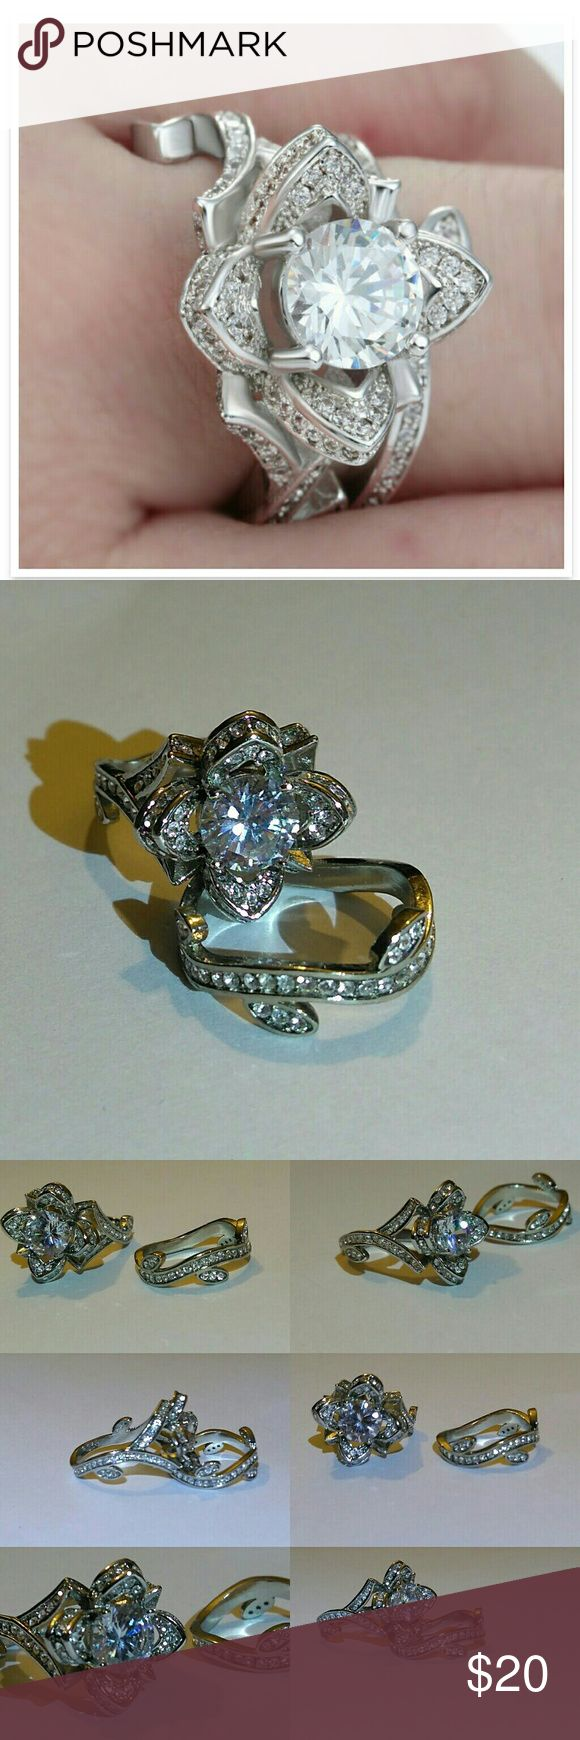 White Topaz Silver Lotus Engagement Ring Set 2pcs Set 925. Sterling Silver All Stones are Lab created Sparkling White Topaz Filigree Ring  Lotus flower Ring with stem like band with leaves Fashion Jewelry Size 7  Perfect holiday gift Radiant Sparkle  💯 Brand New High Quality 💯 What u see is what u get 🚫 No trades Jewelry Rings